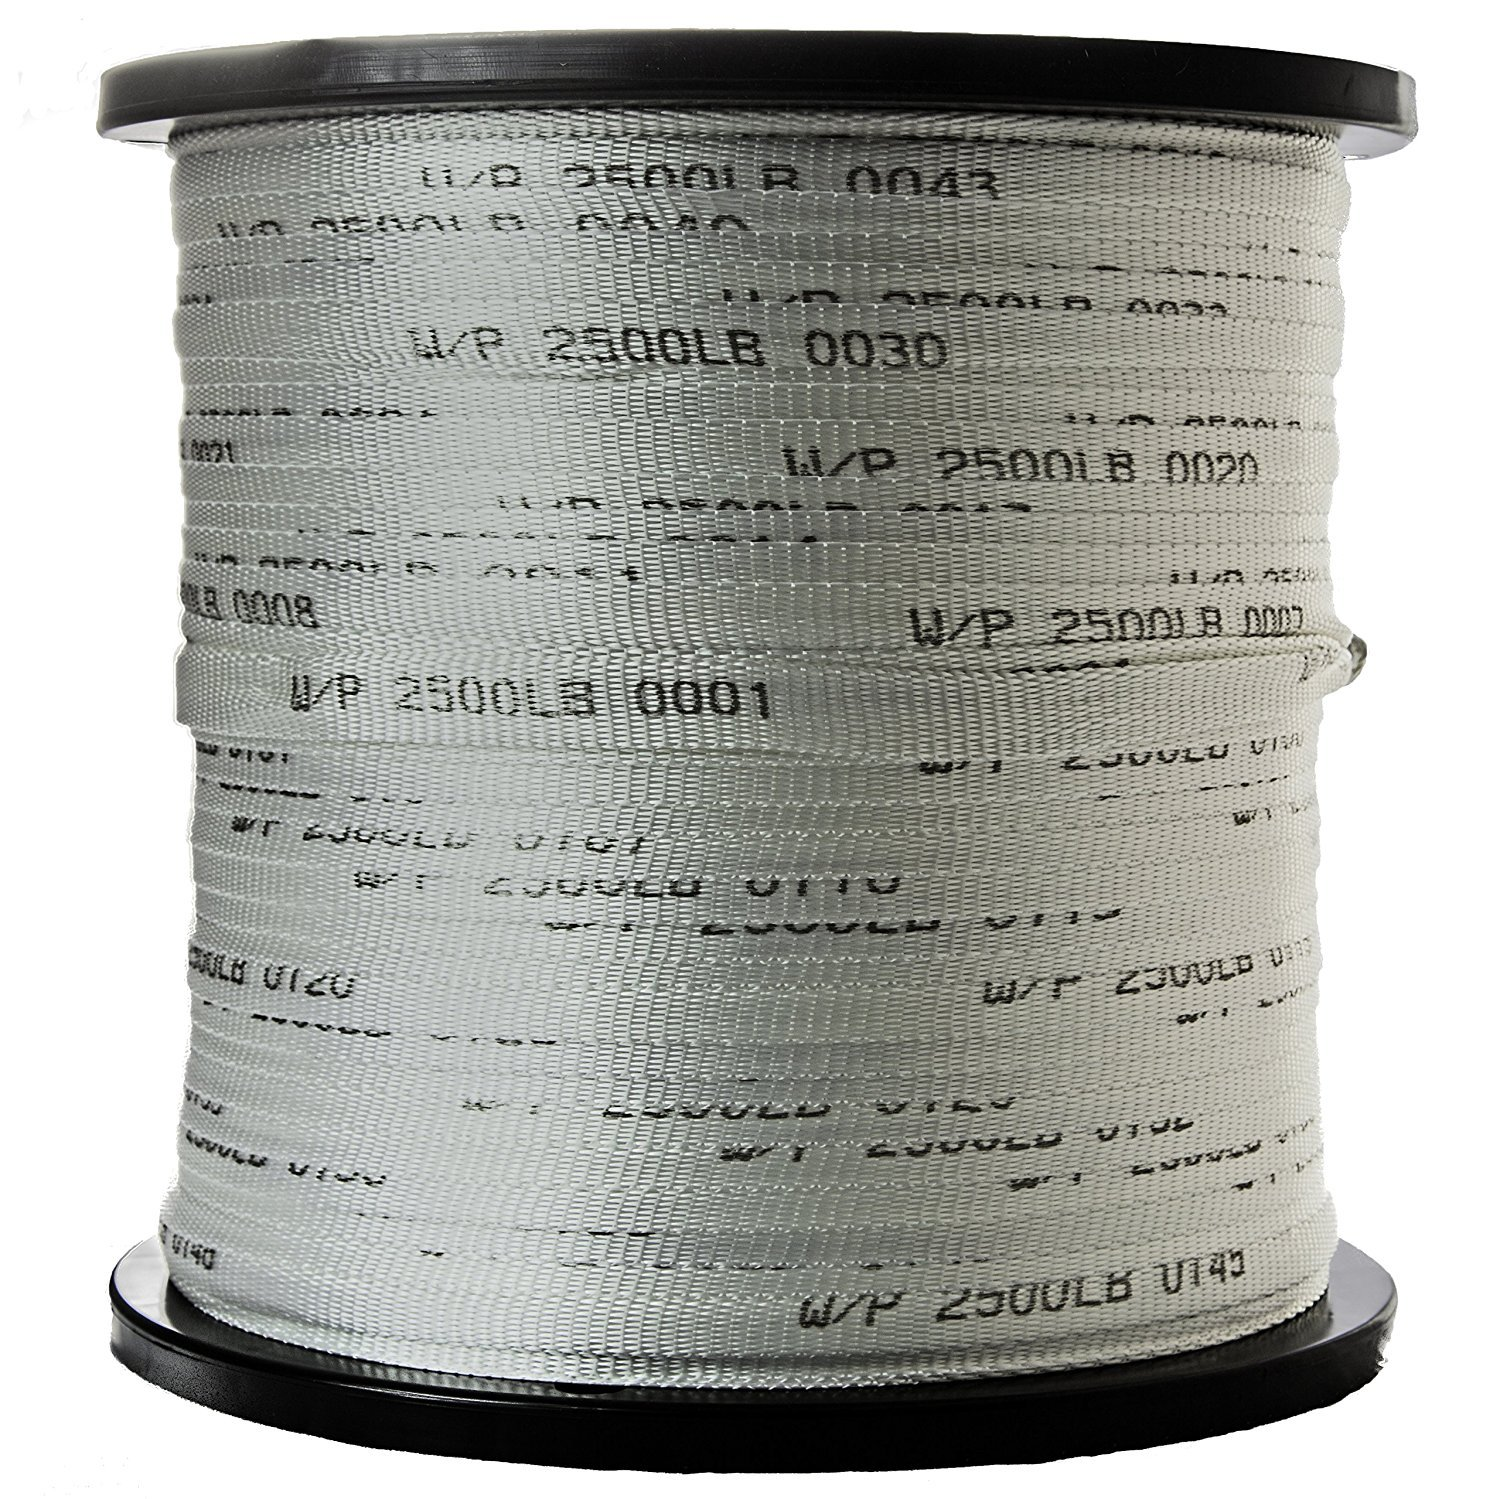 USA Made 2500 Lb 3/4 Pull Tape/Mule Webbing - 3000 FT (Many ...